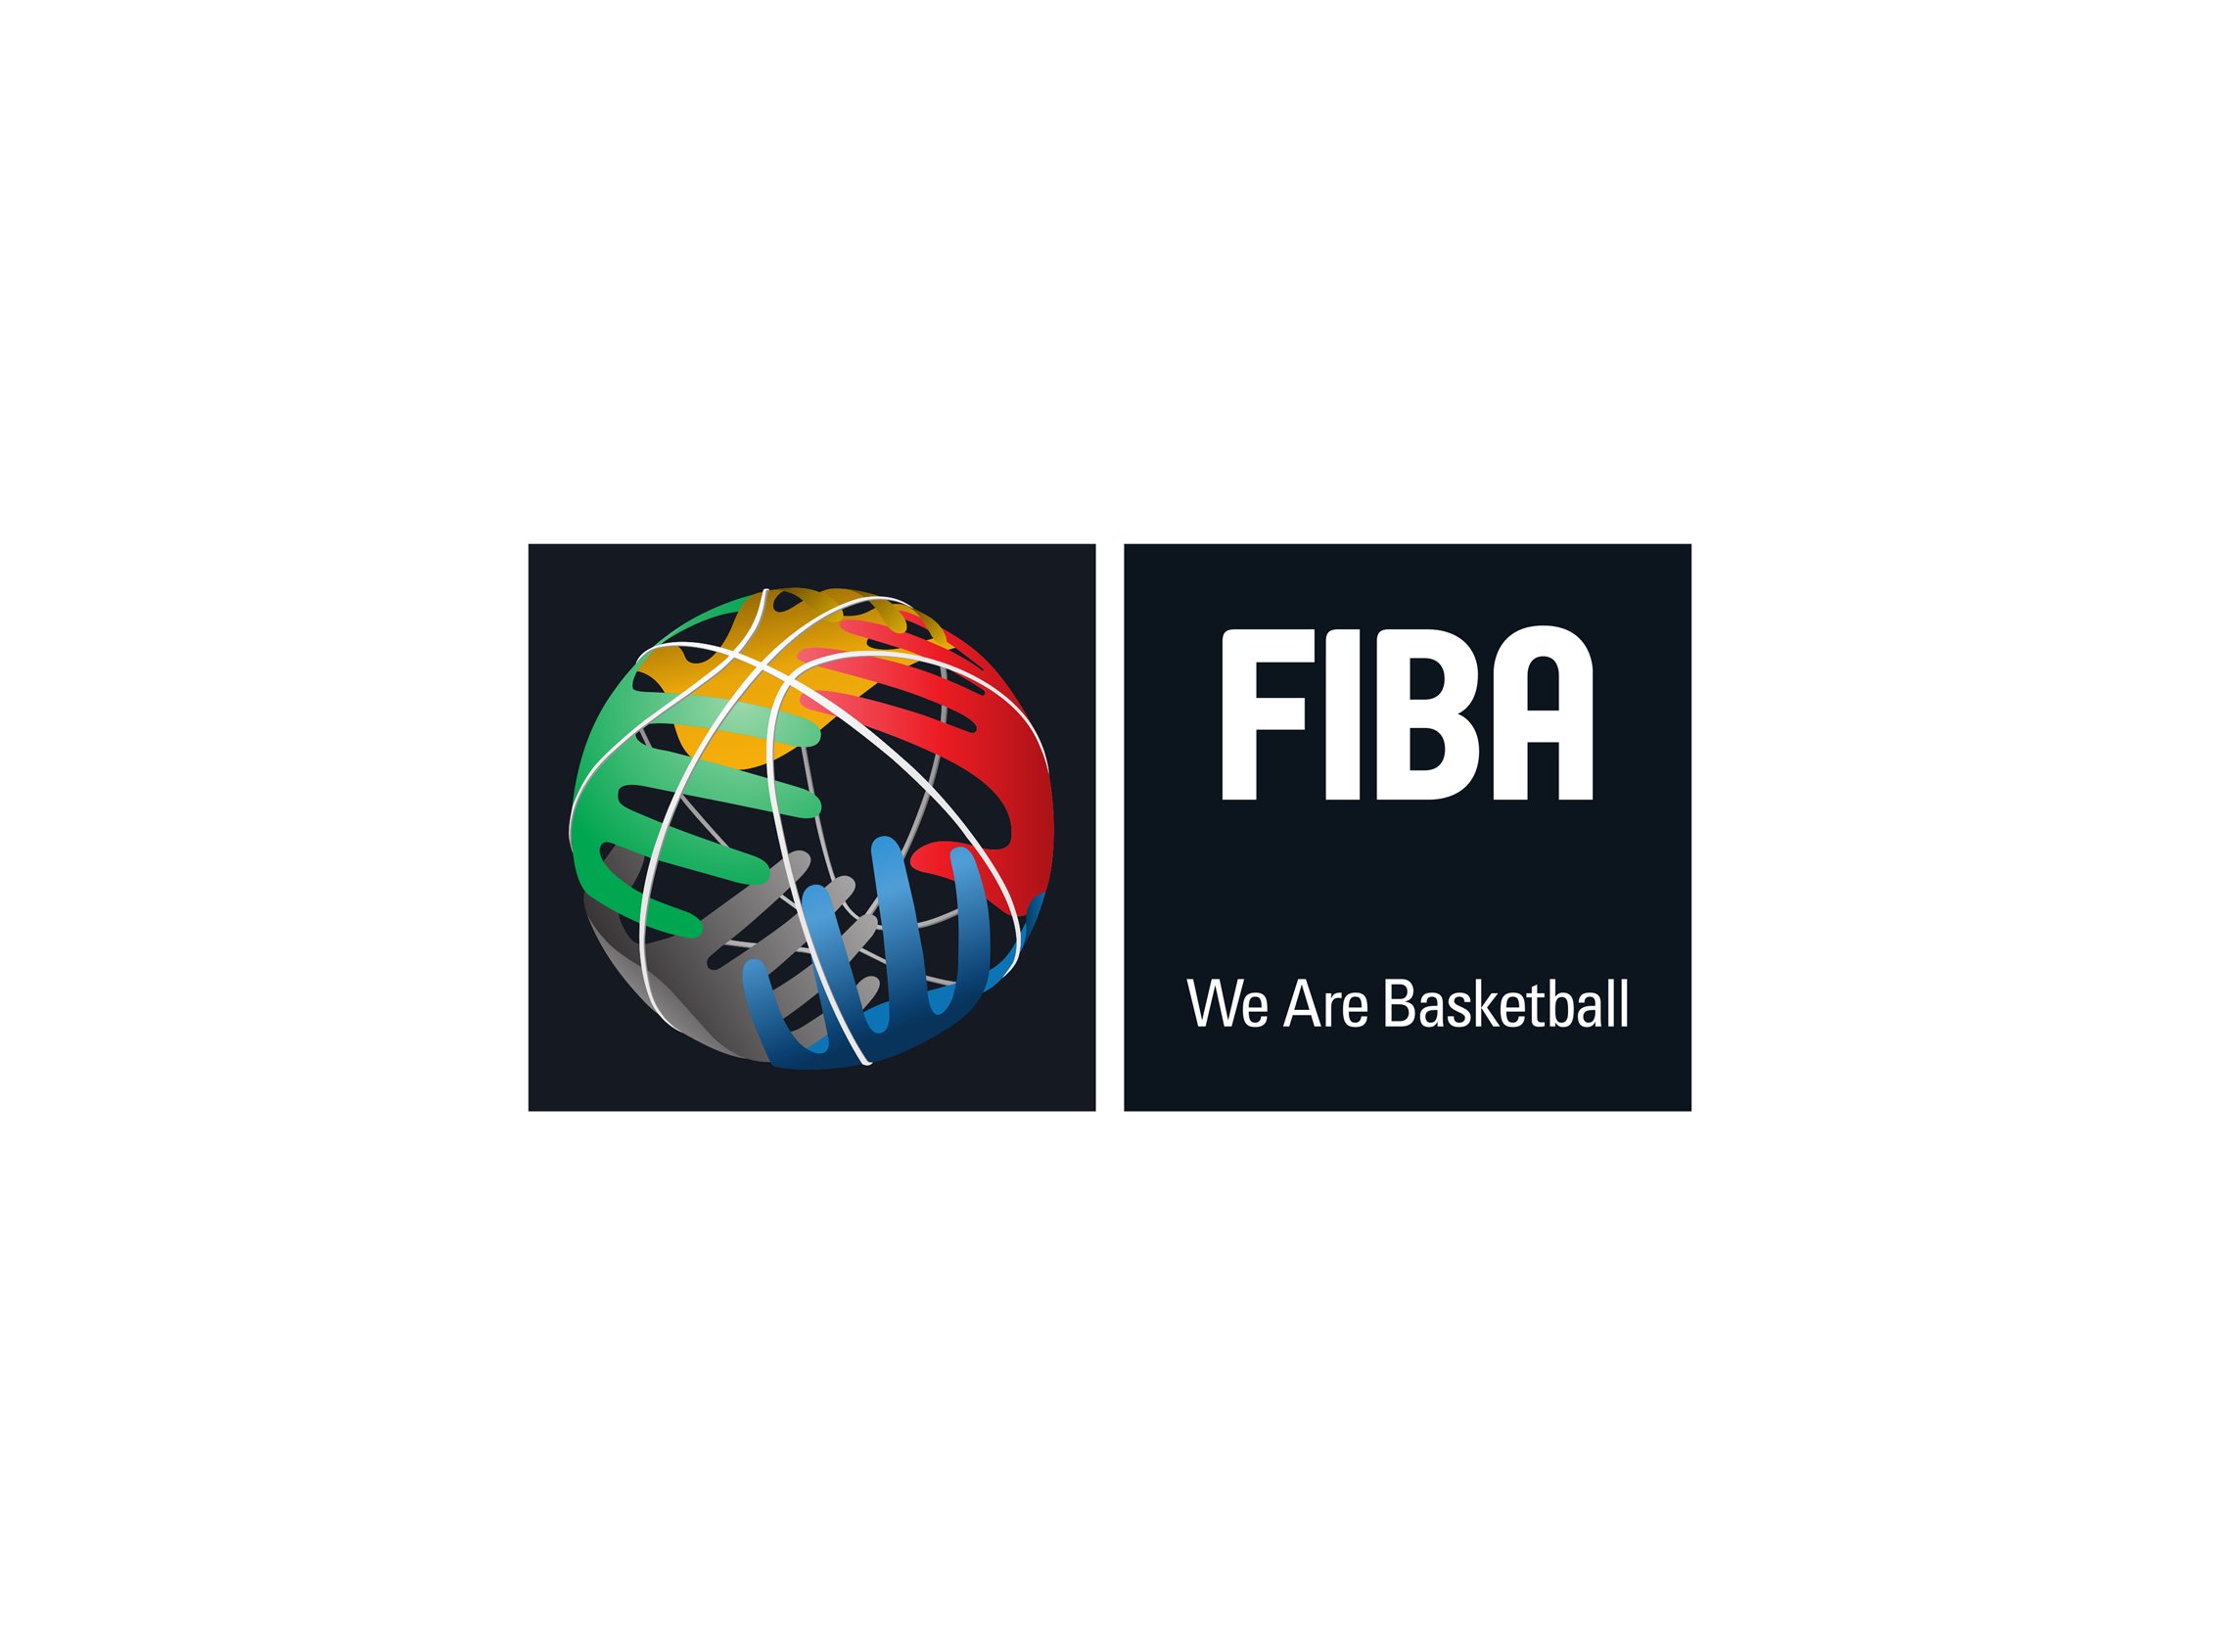 history of fiba Archivefibacom receives about 3305% of its total traffic social metrics get more archivefibacom social history 0% of total traffic in last 3 months is.